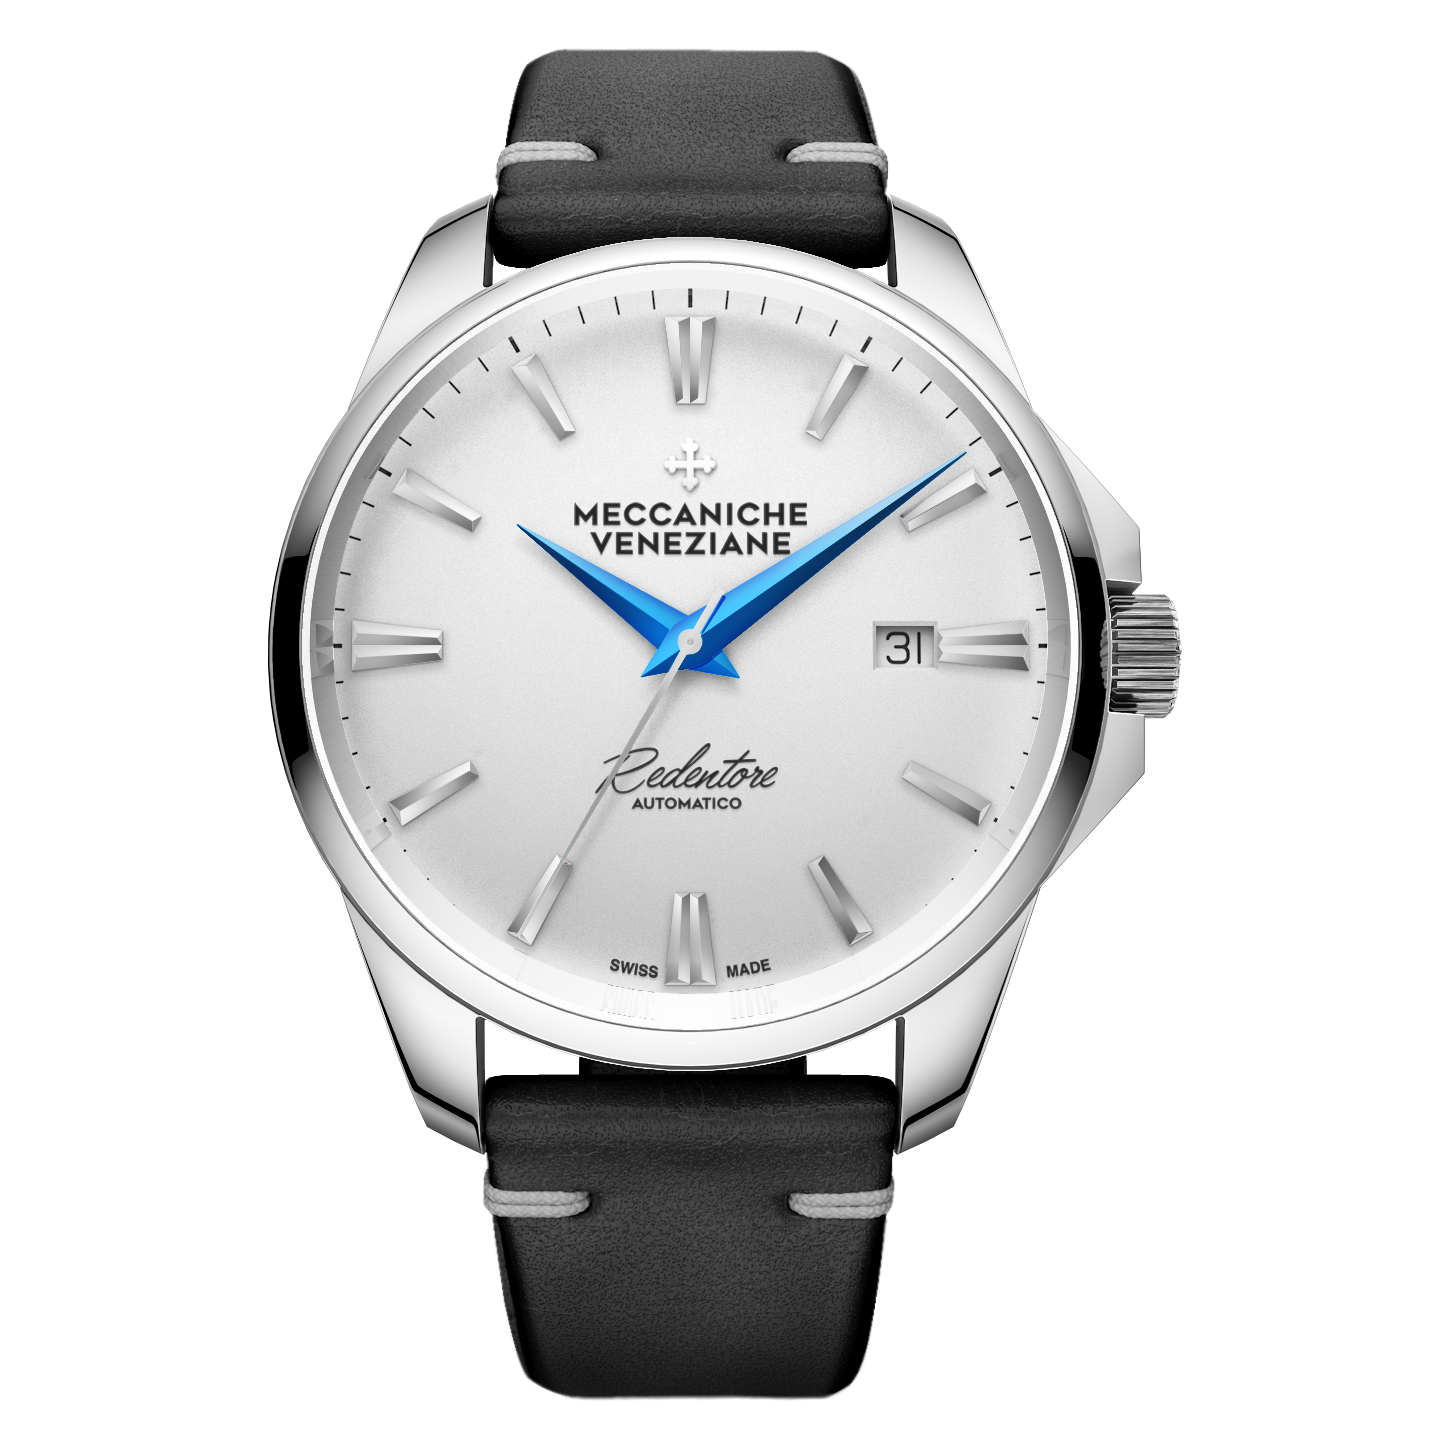 Meccaniche Veneziane white dial blue hands Rendentore automatic on leather strap -1201008